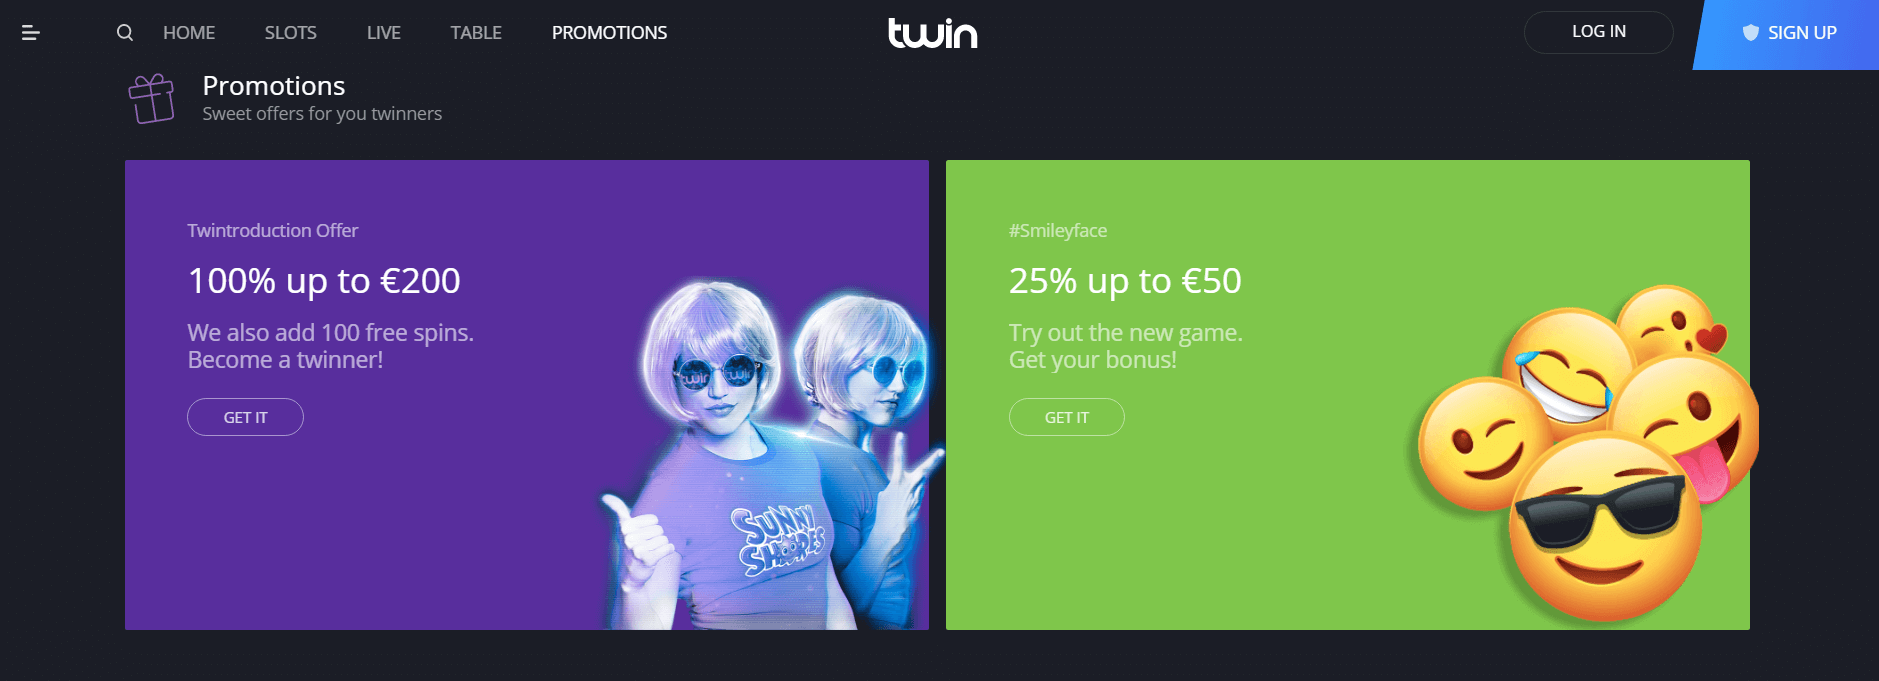 An image of twin casino promotions